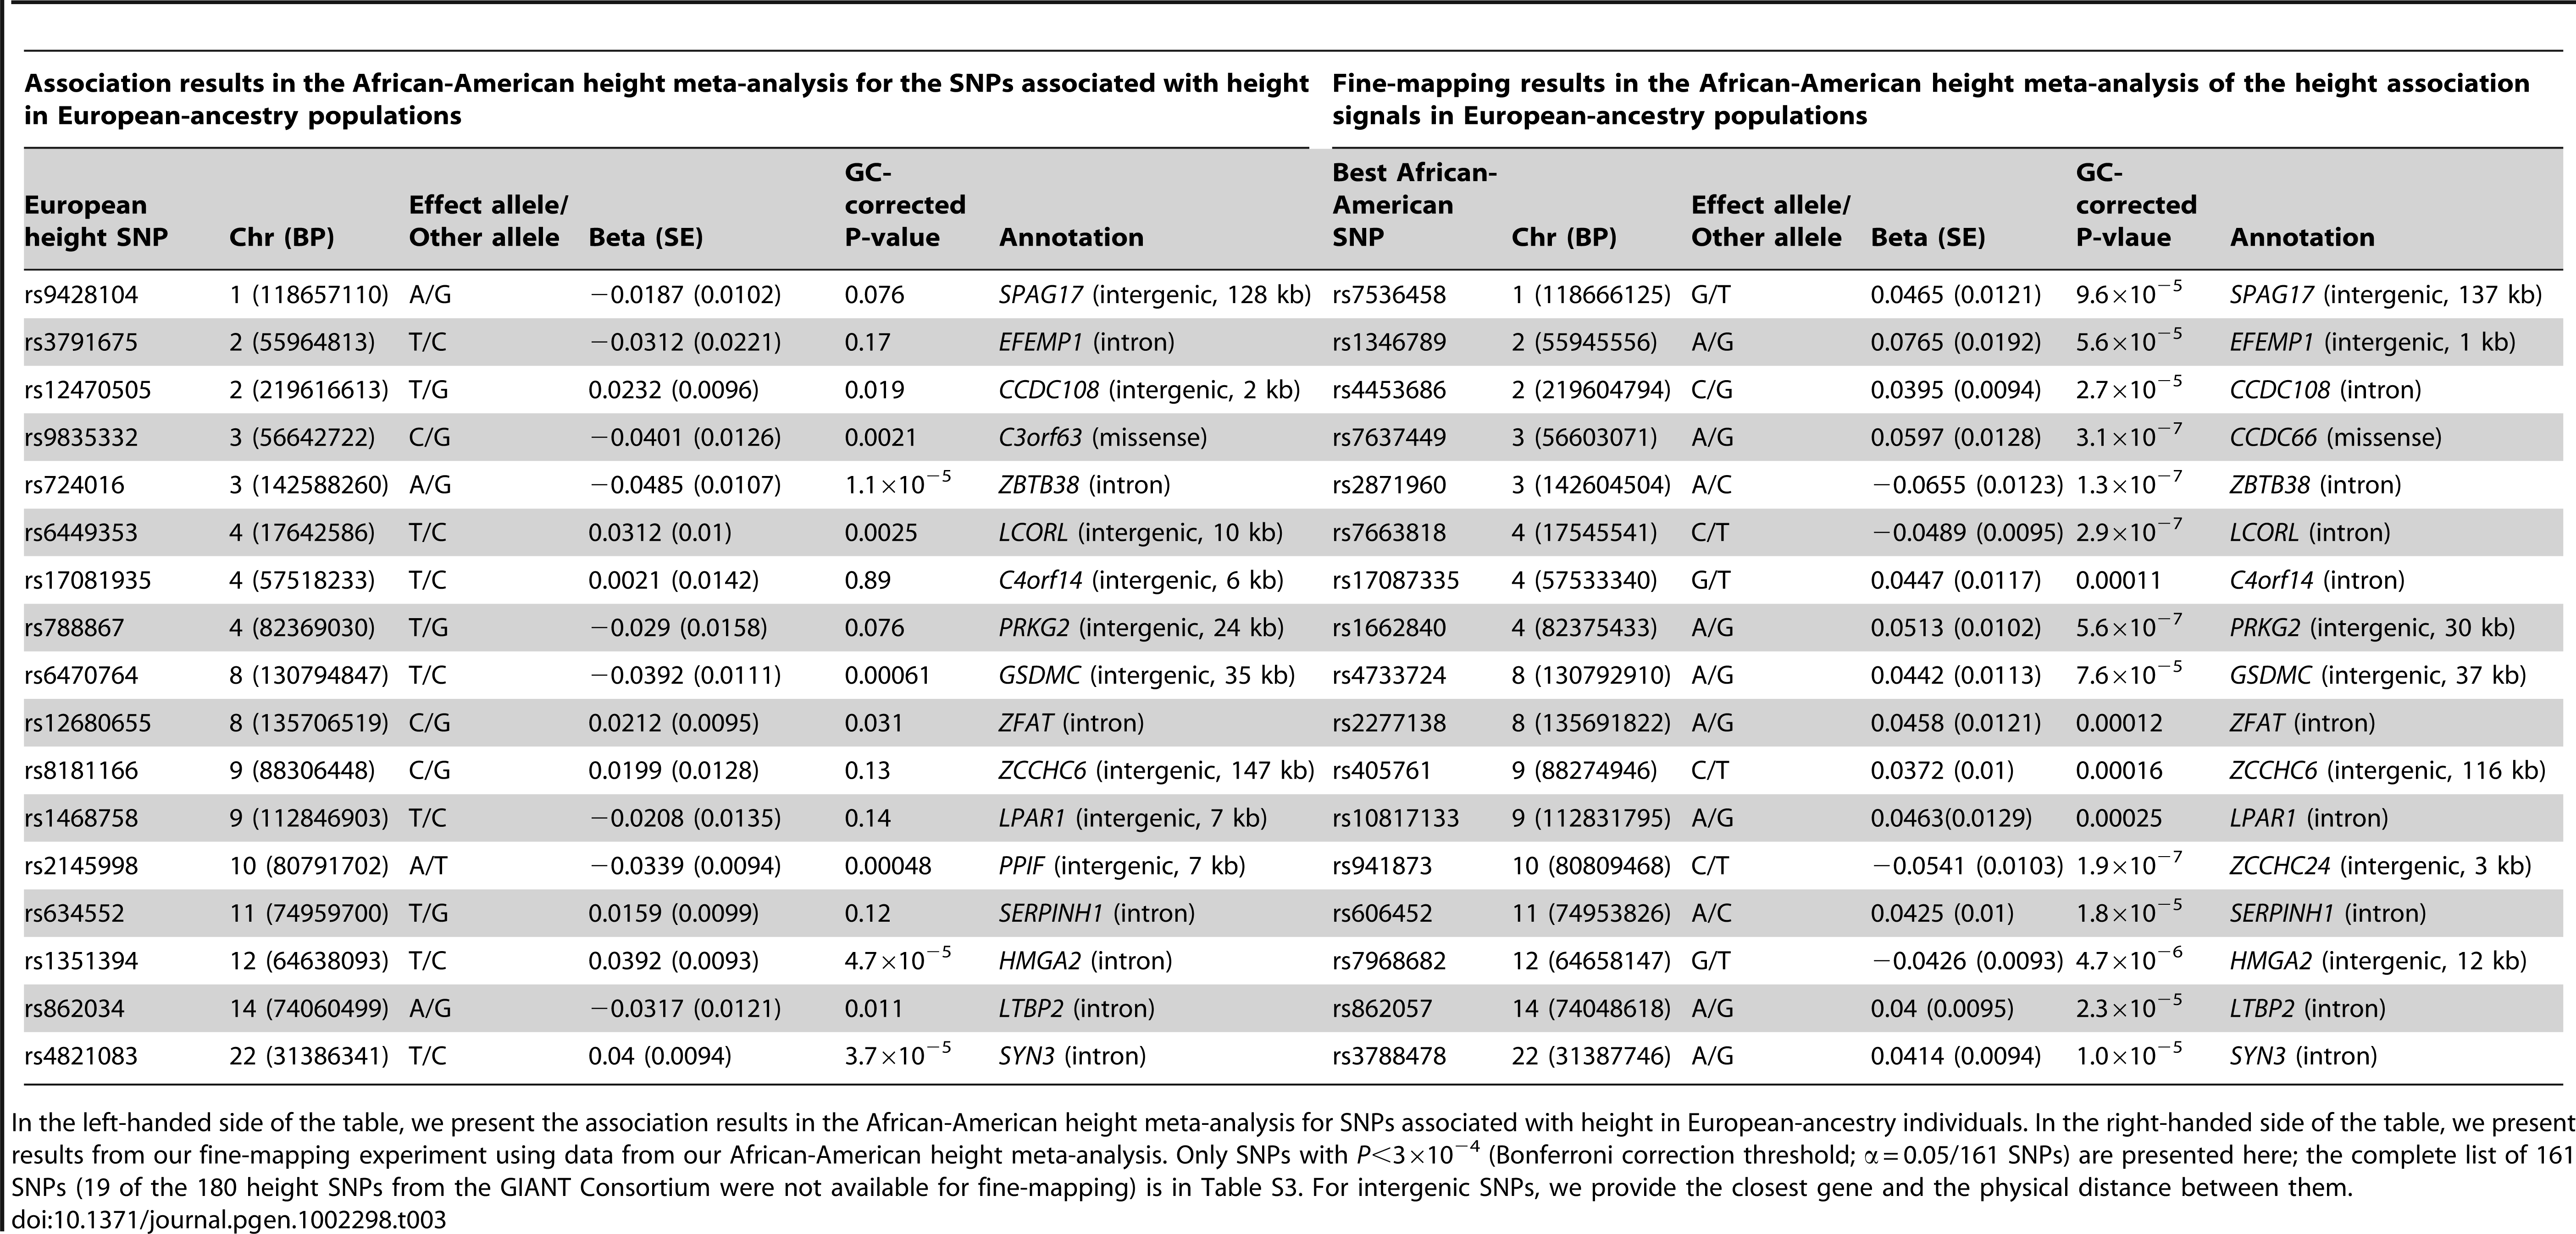 Fine-mapping results for SNPs associated with height in individuals of European descent <em class=&quot;ref&quot;>[3]</em>.